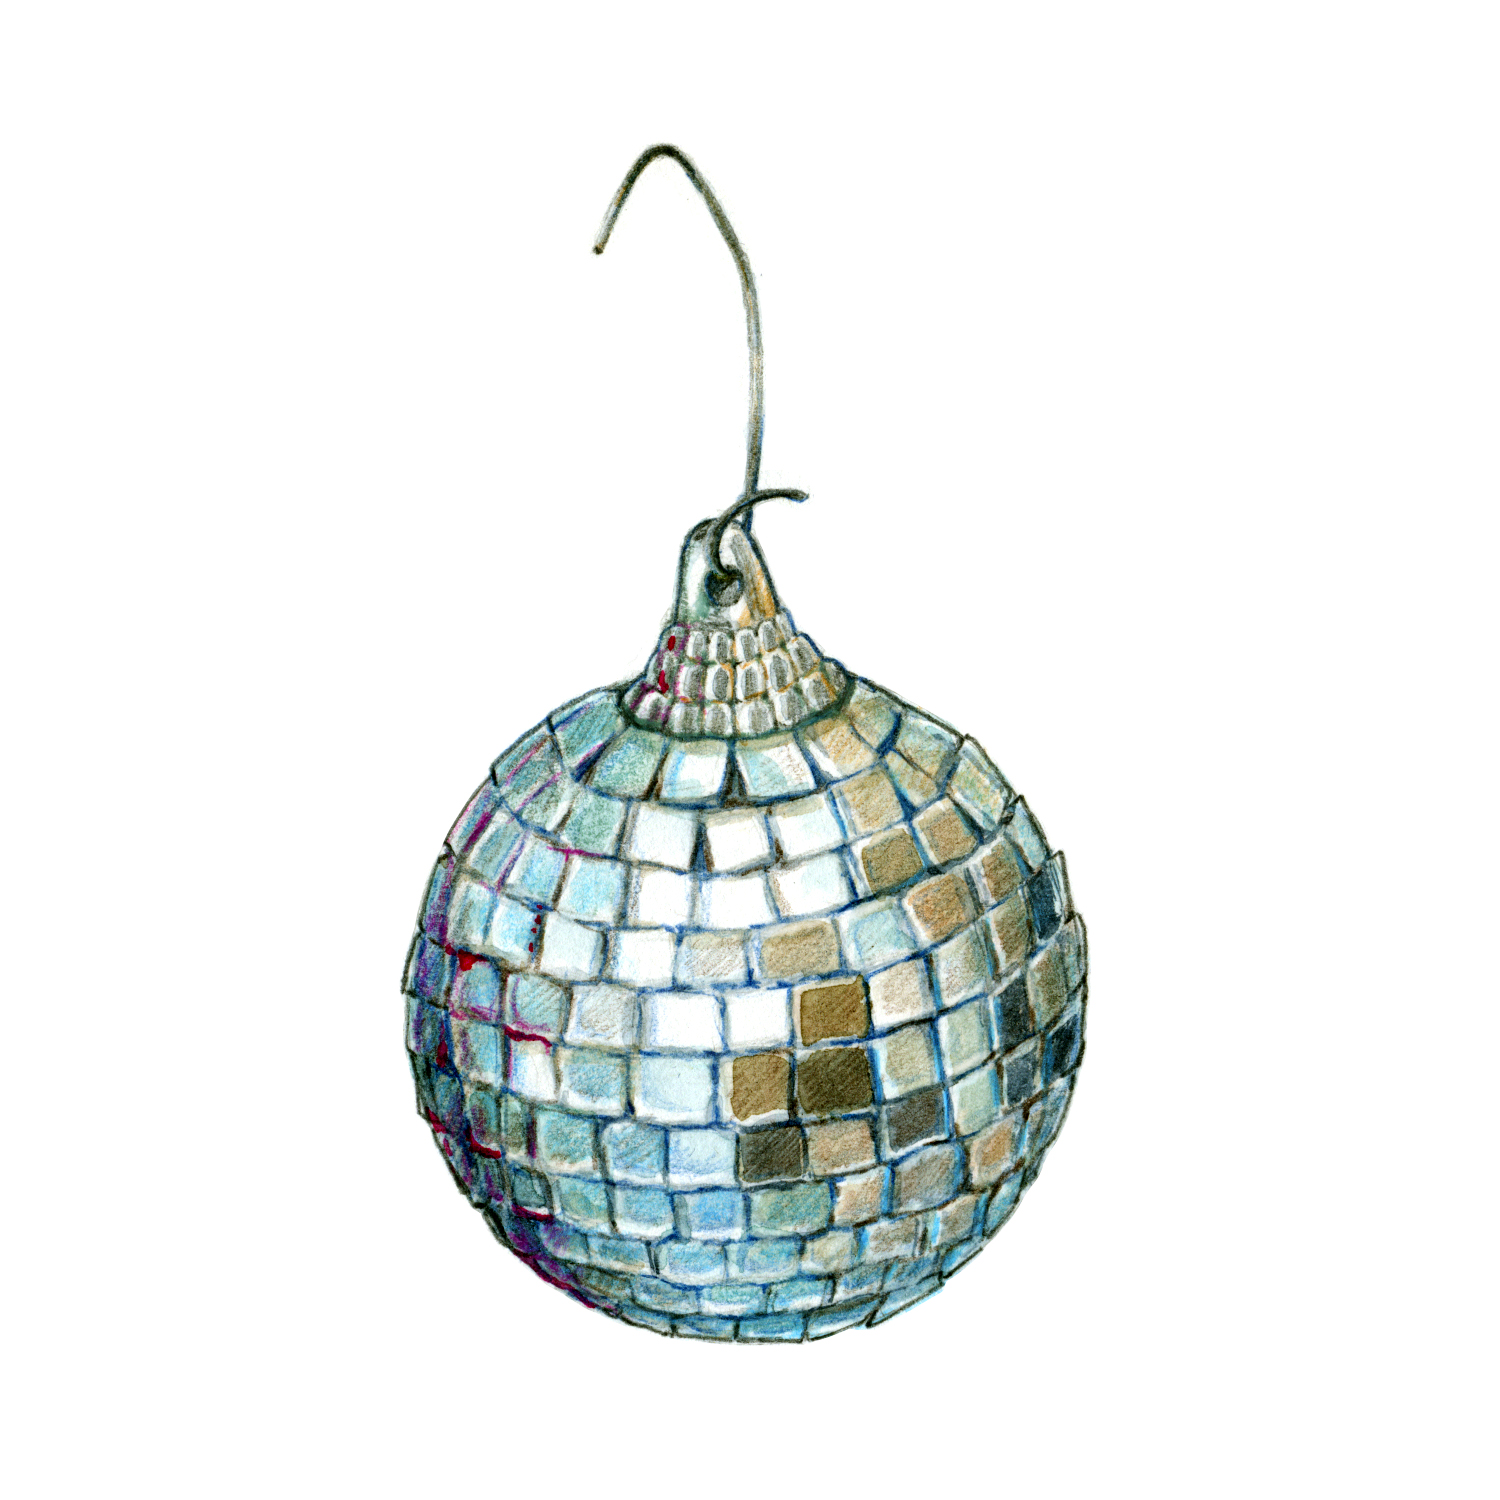 disco_ball_ornament.jpg